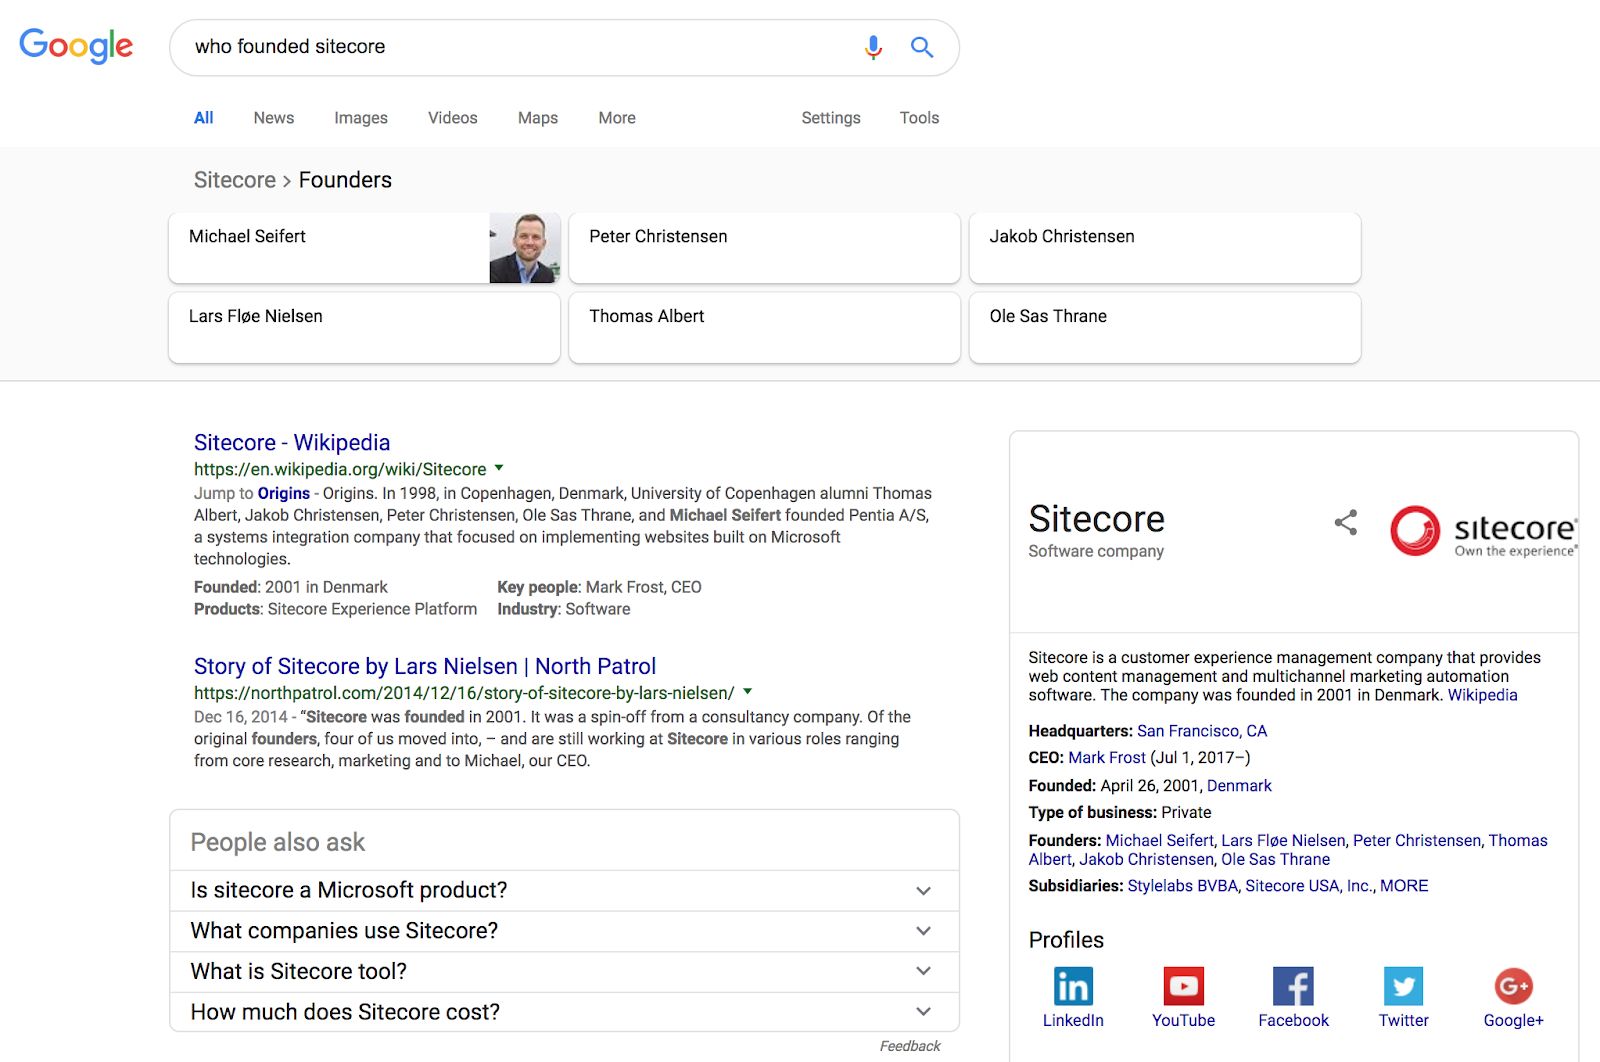 Google search result for who founded sitecore showing Knowledge Panel